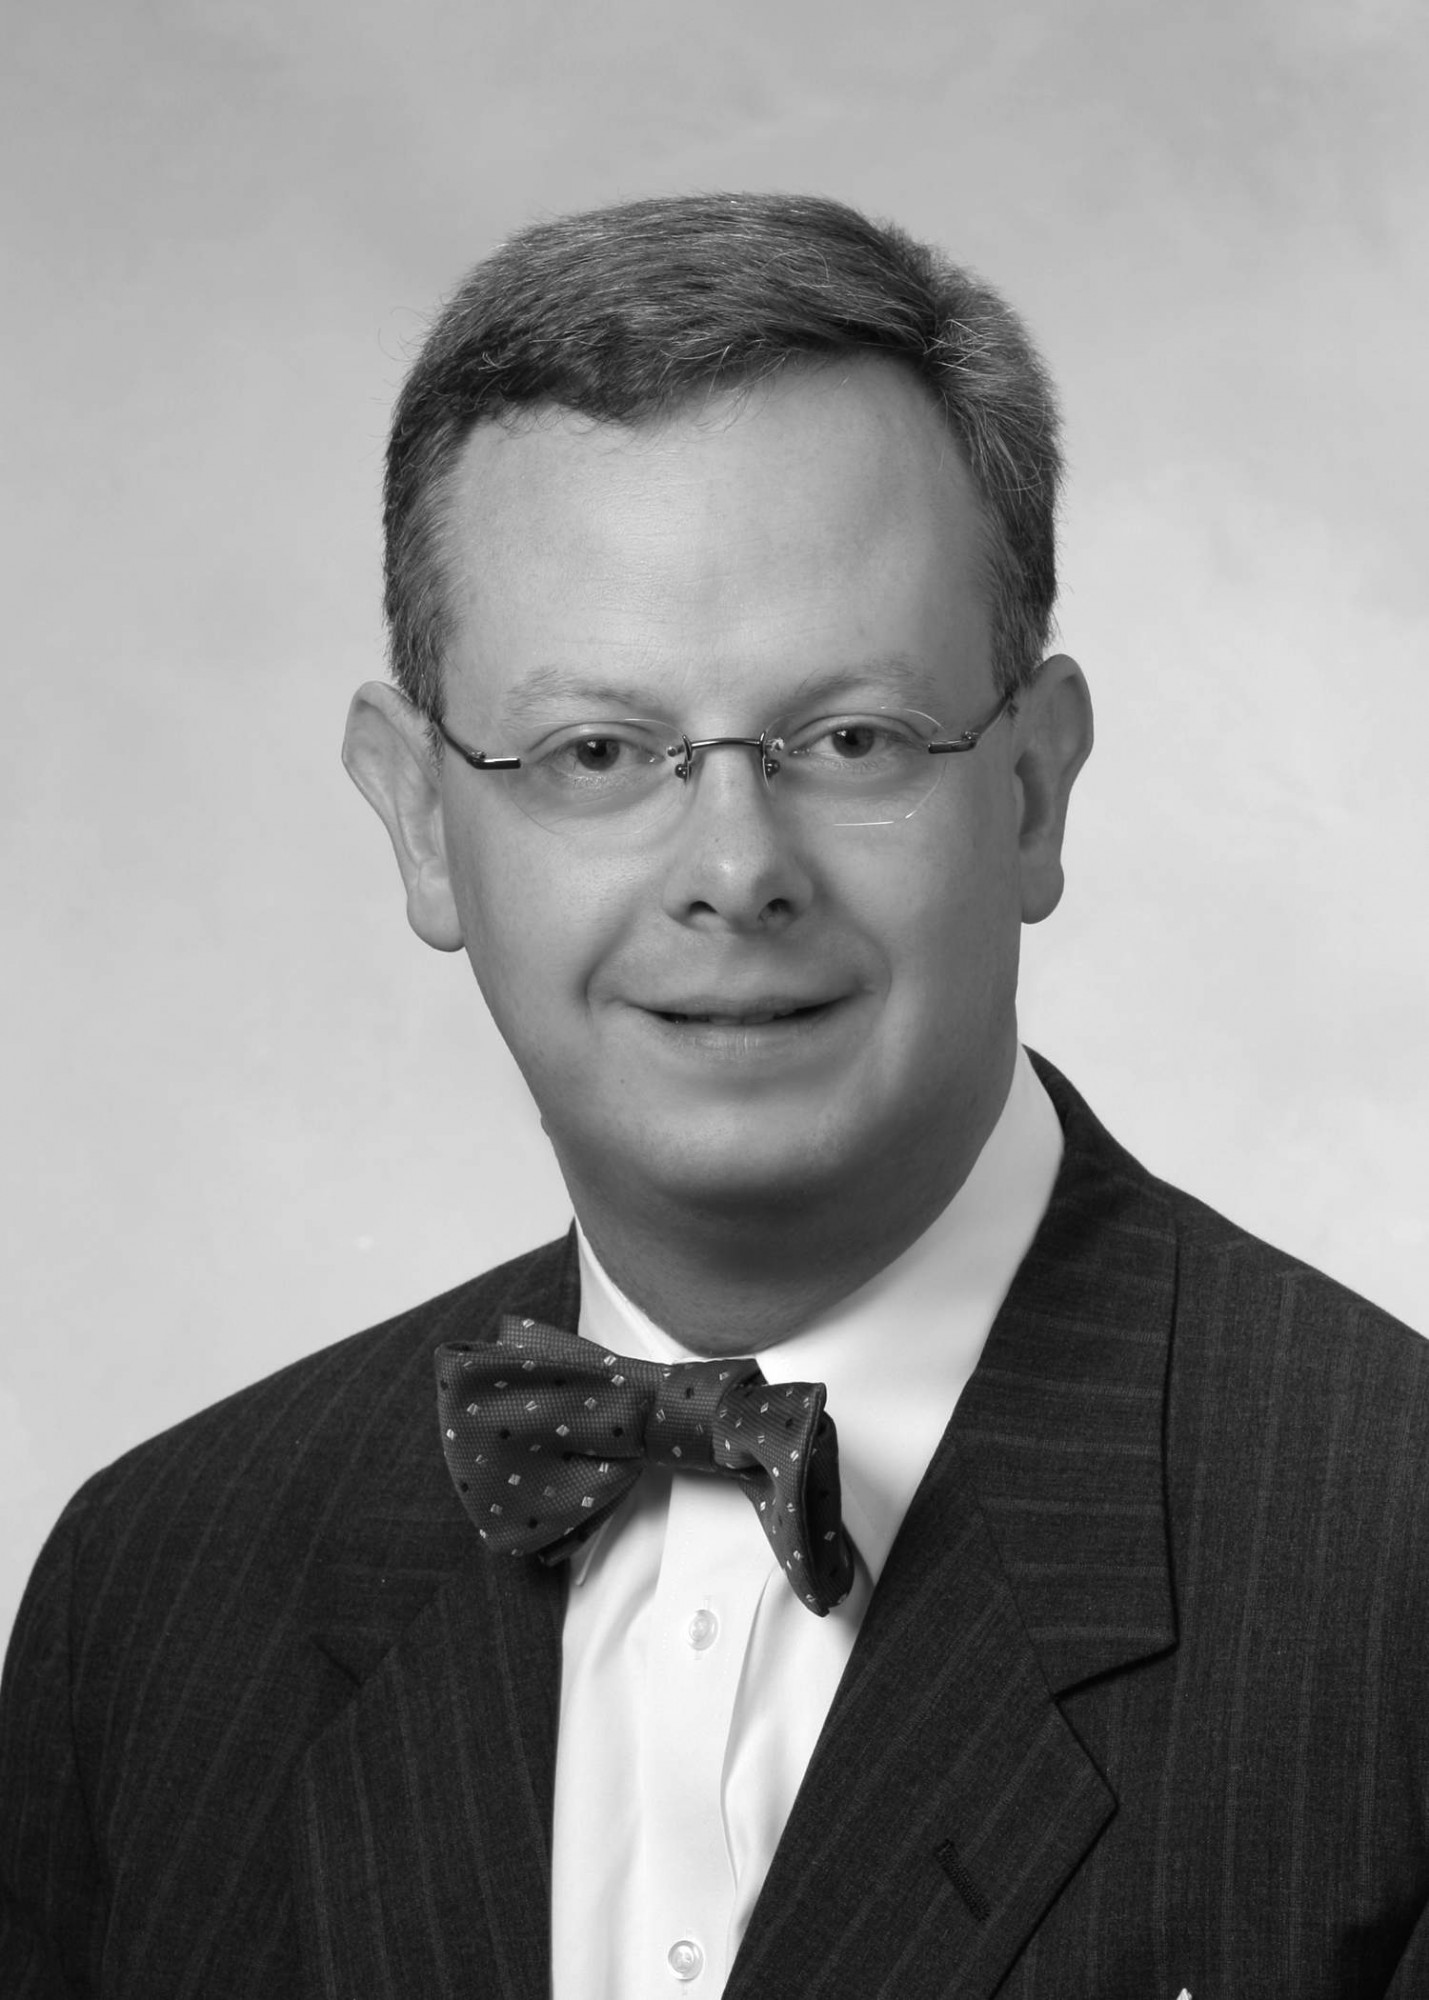 William W. Hamner, Jr. B&W 3772